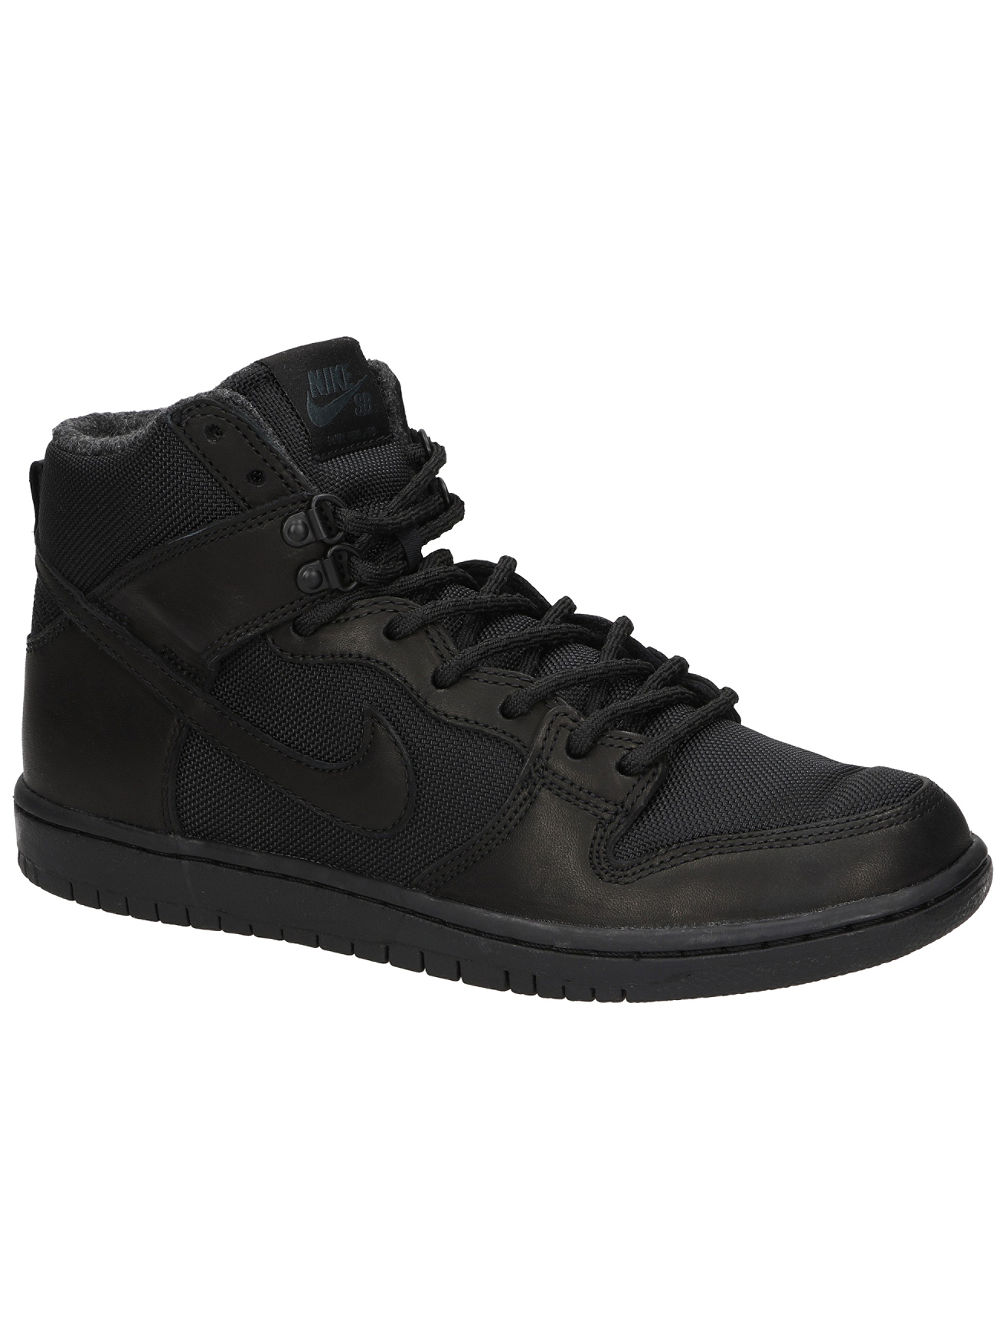 Nike Black Leather Skate Shoes